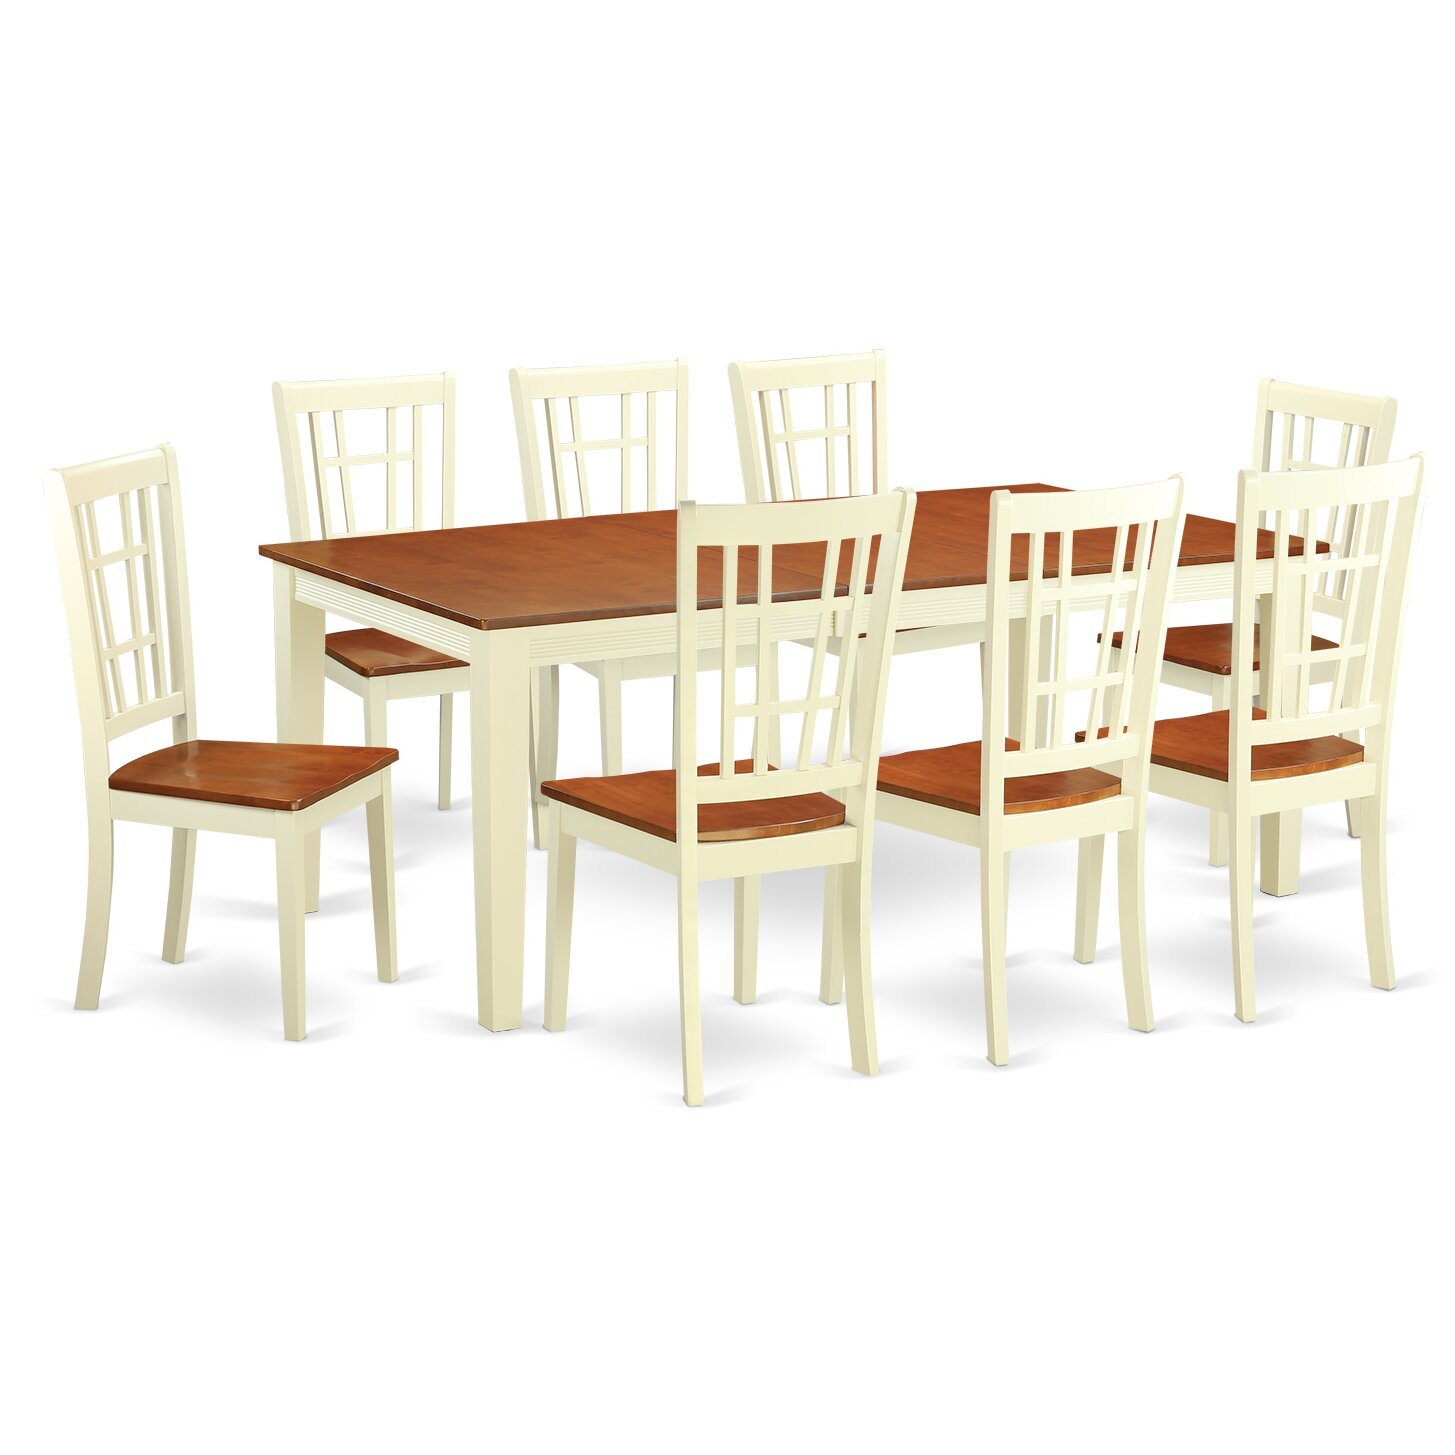 East west quincy 9 piece dining set wayfair for Dining room kitchen sets